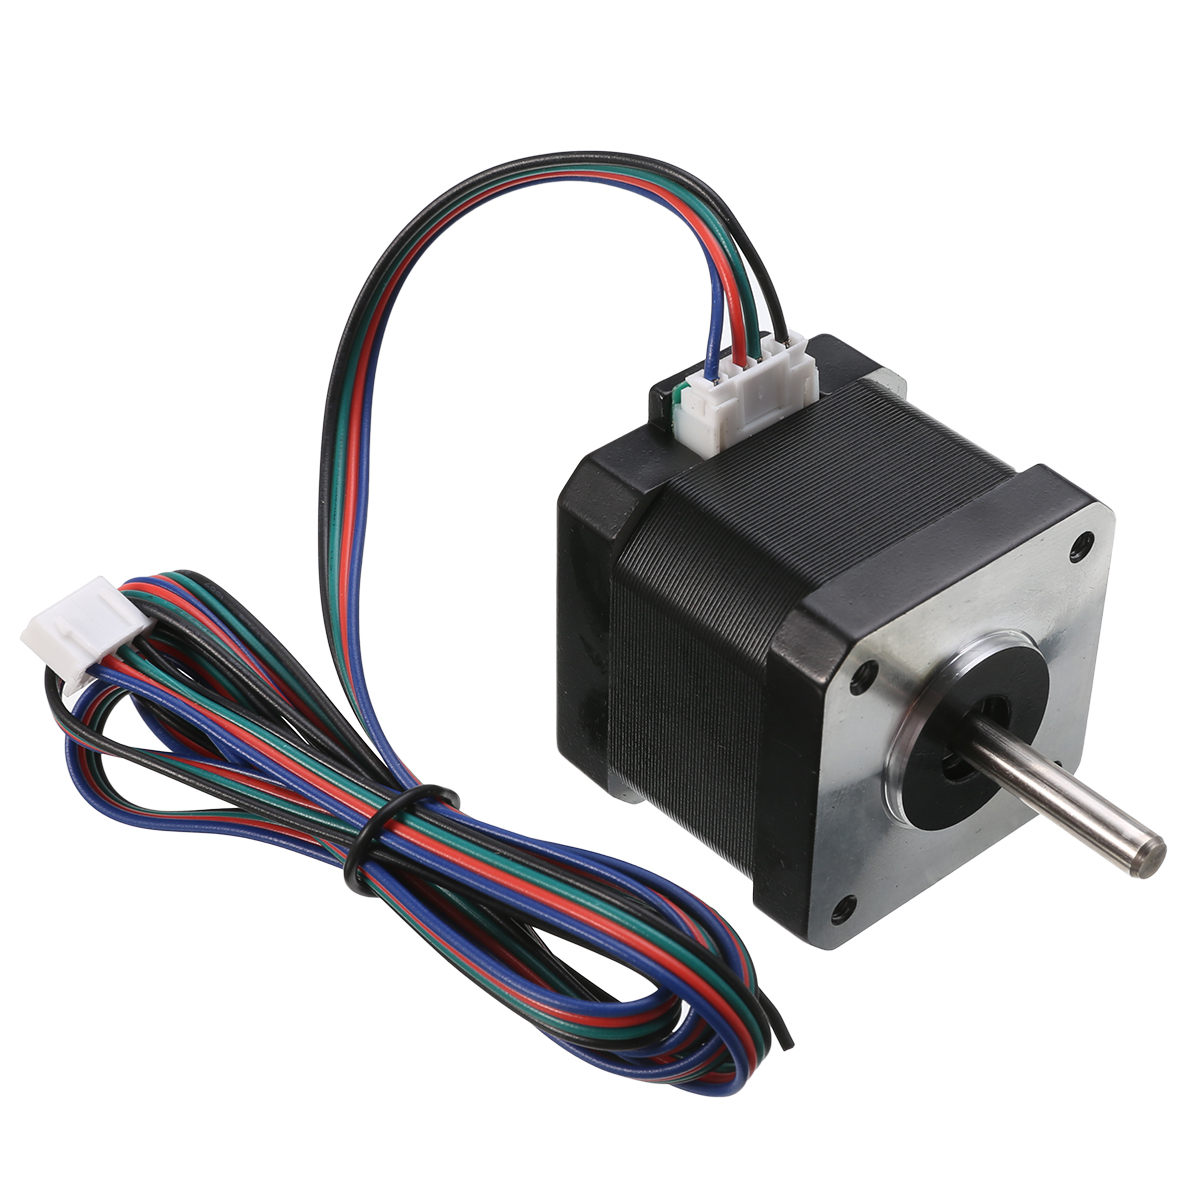 цена на CNC 1.8 Degree Stepper Motor 1.7A 2 Phase NEMA17 40mm 4-wire Stepper Motor For 3D Printer Accessories